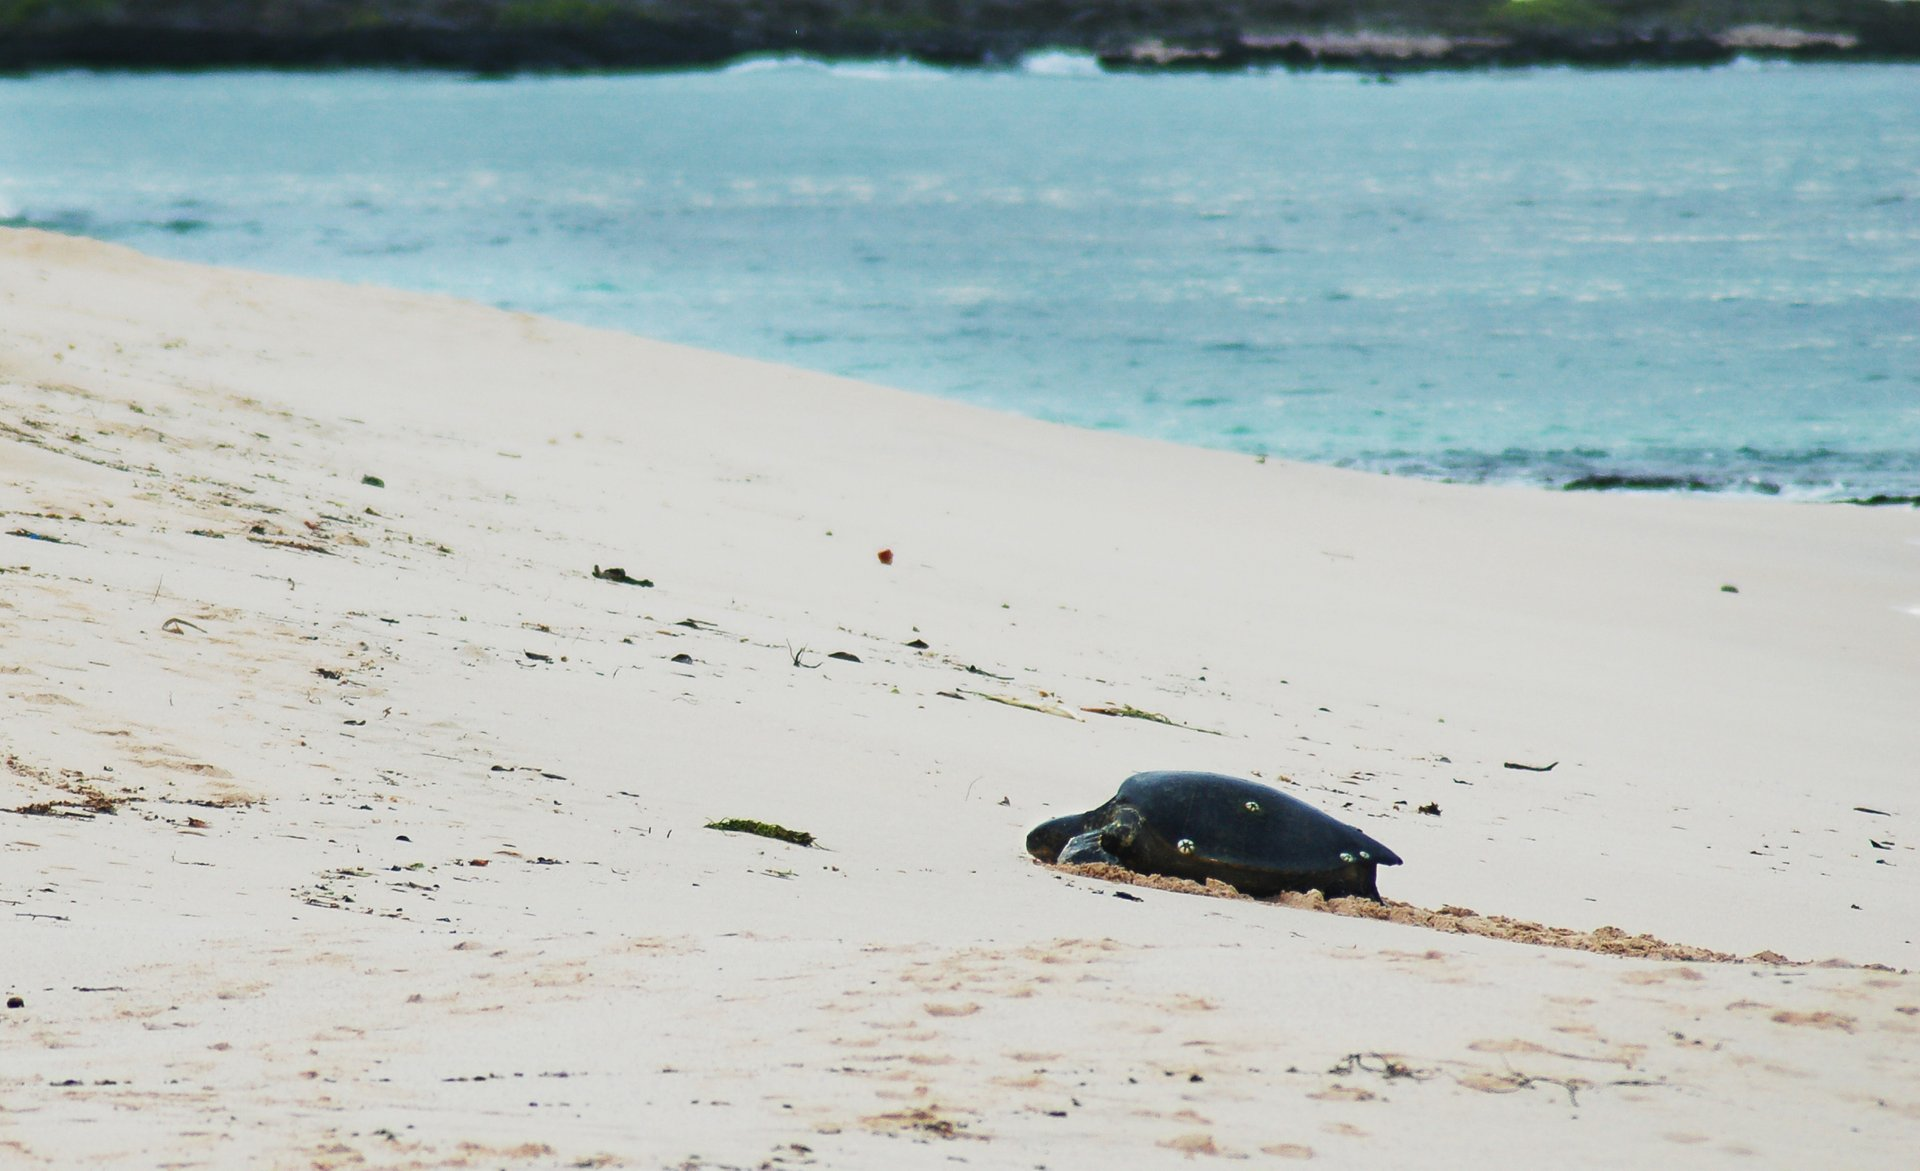 Green Turtles in Galapagos Islands - Best Time